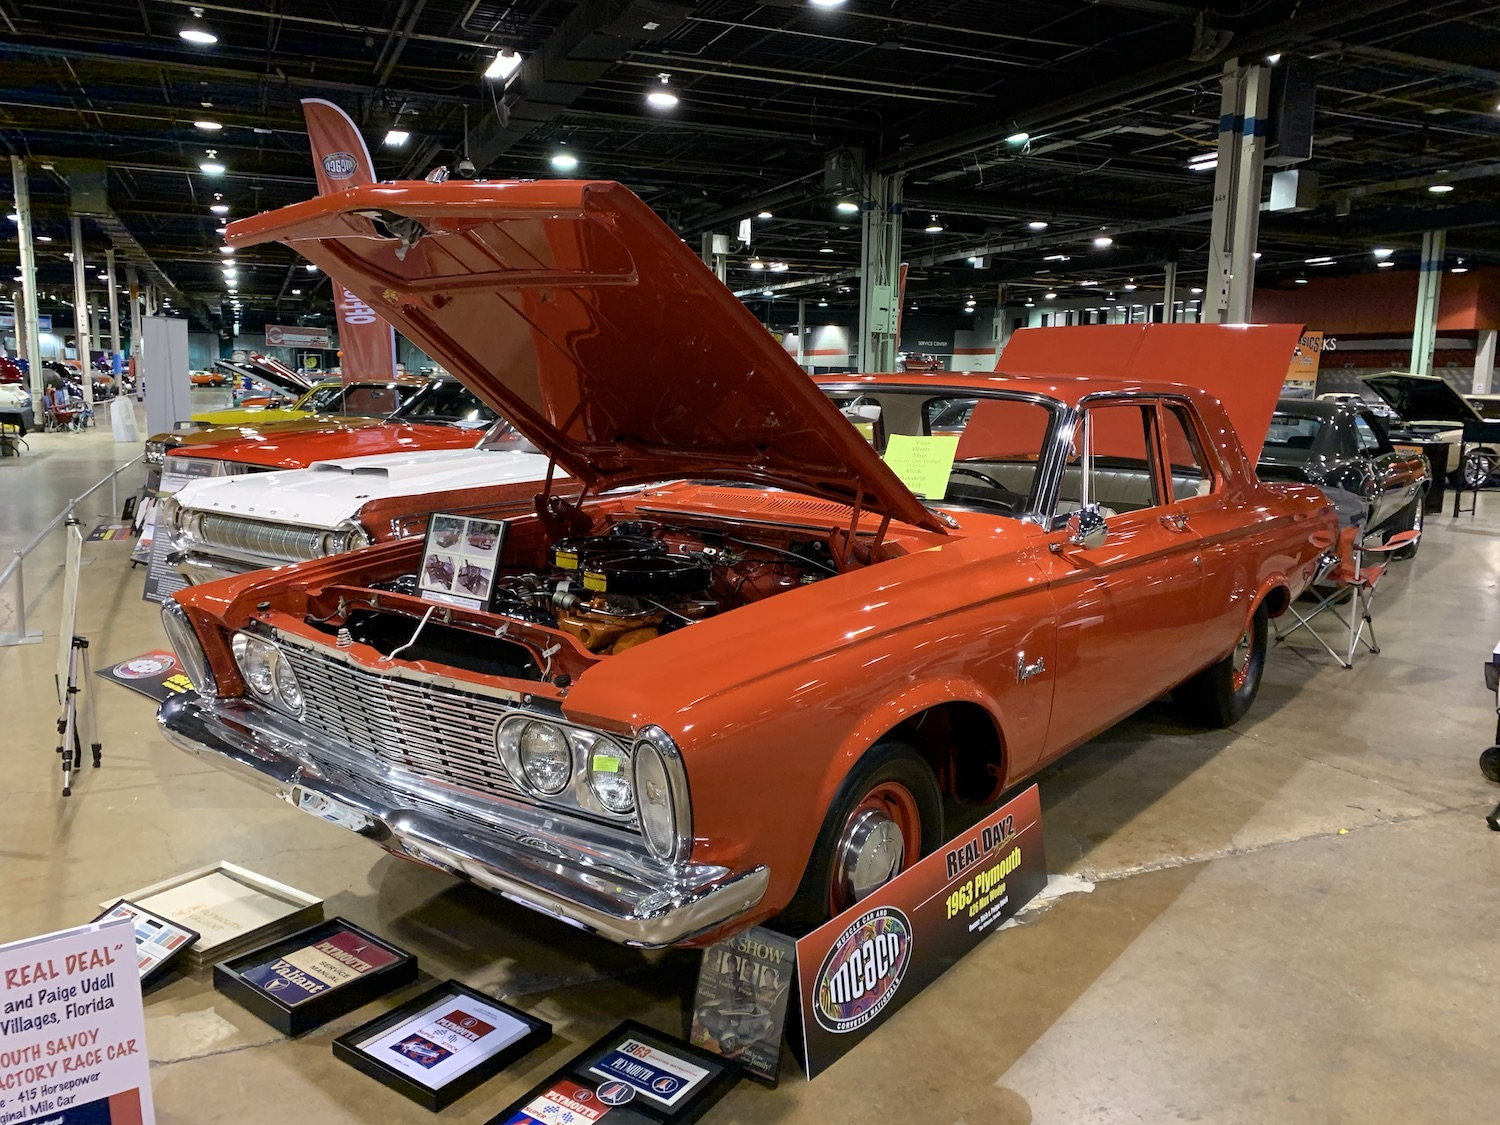 1963 Plymouth Savoy Max Wedge 426 front three-quarter